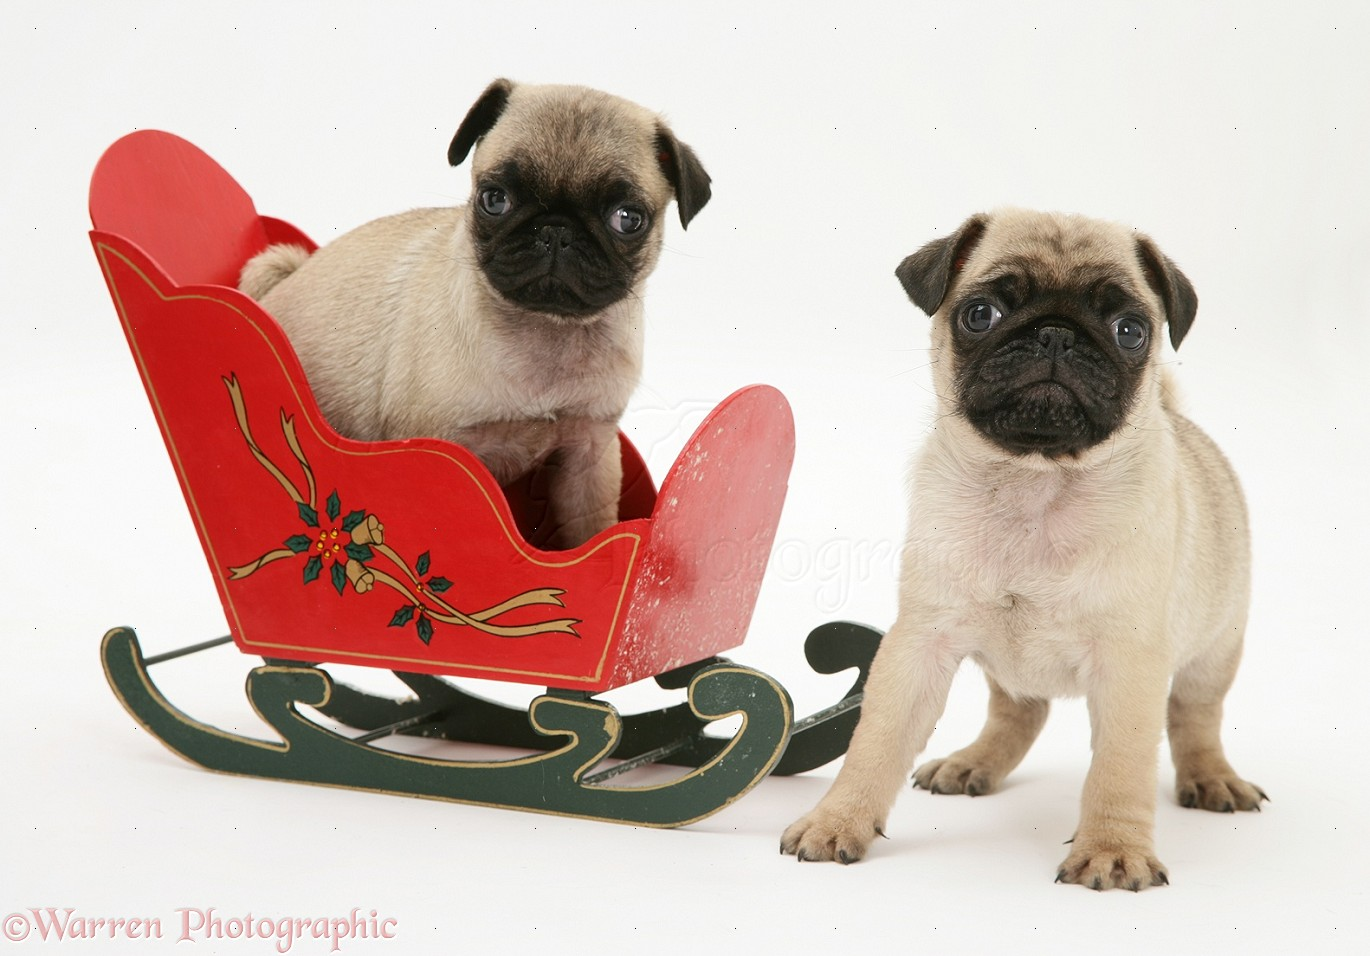 Dogs: Fawn Pug pups with a wooden toy sledge photo - WP20075